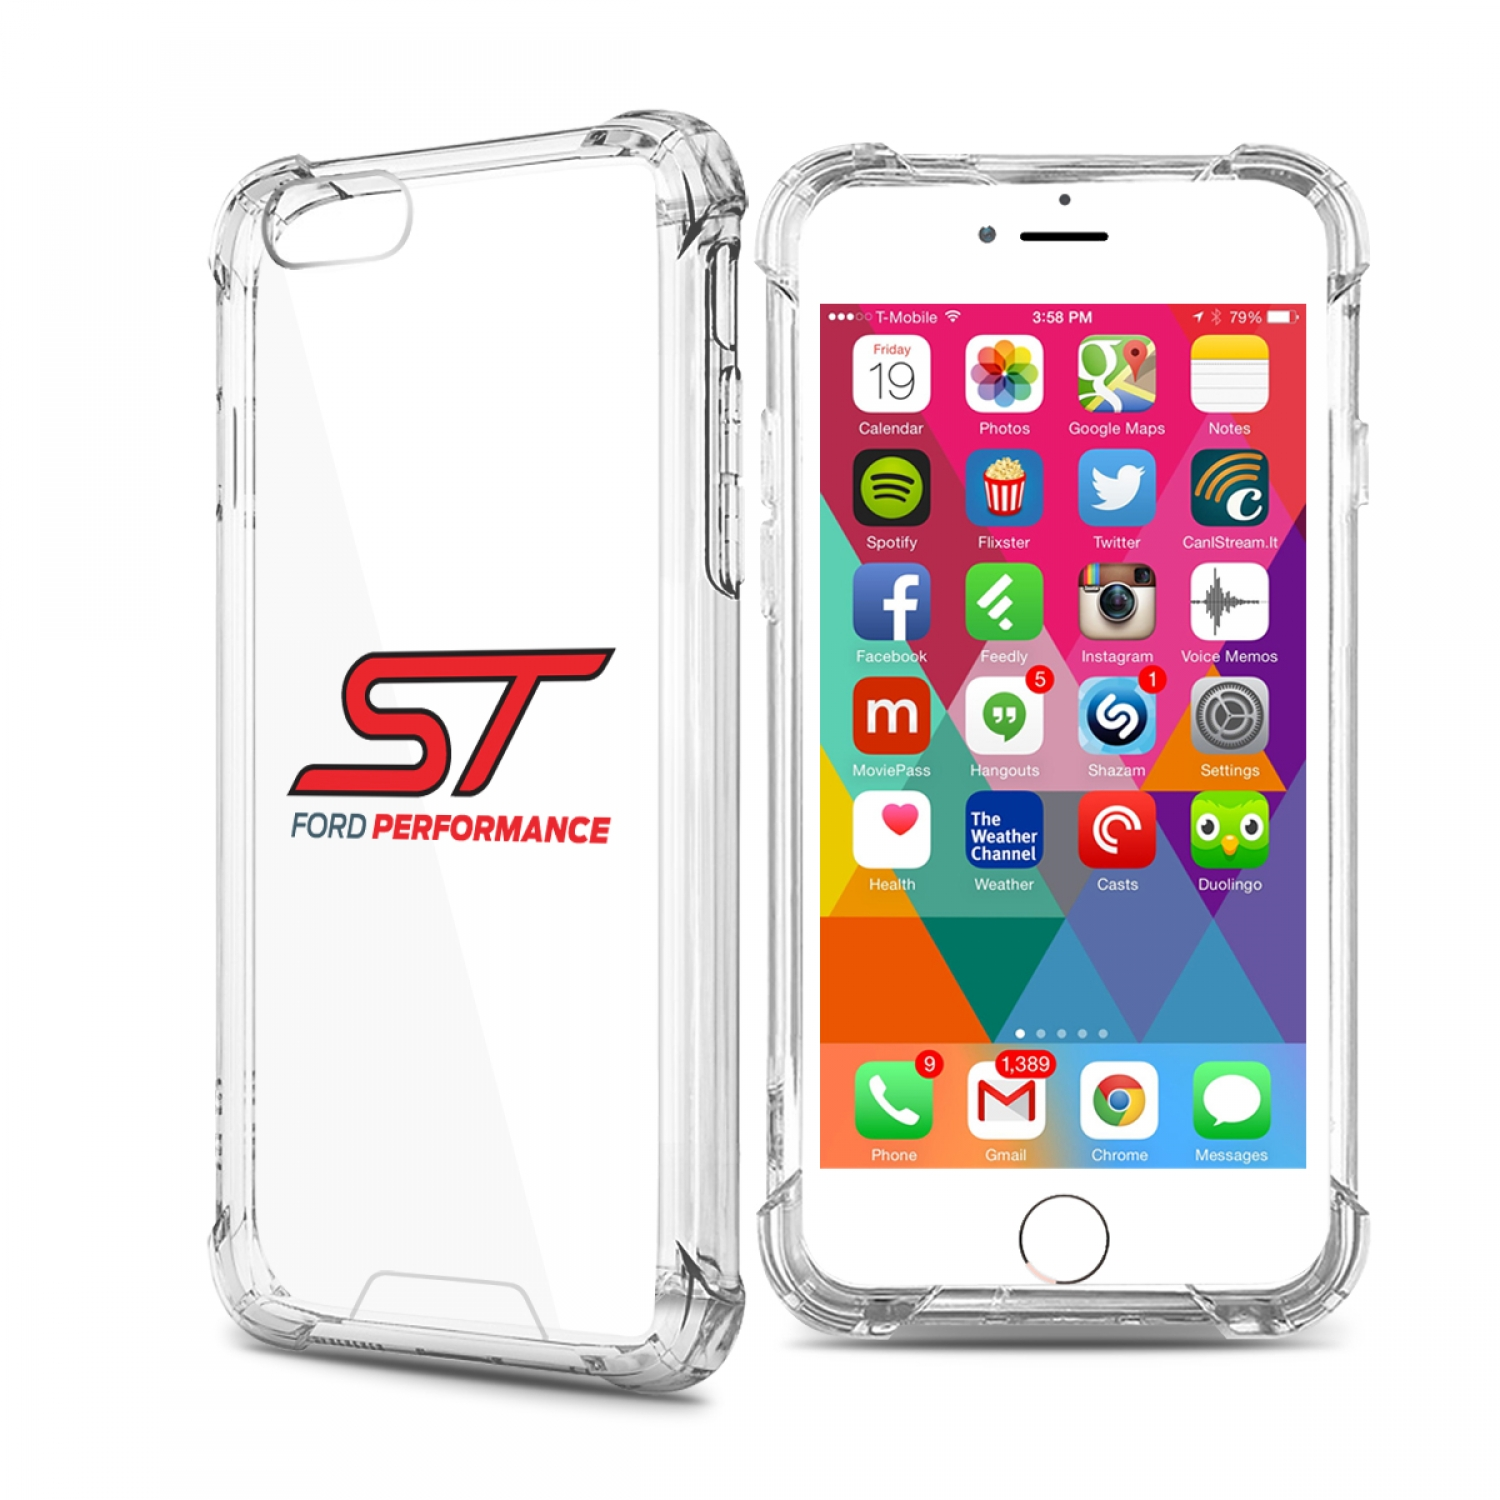 Ford Focus ST iPhone 7 Clear TPU Shockproof Cell Phone Case